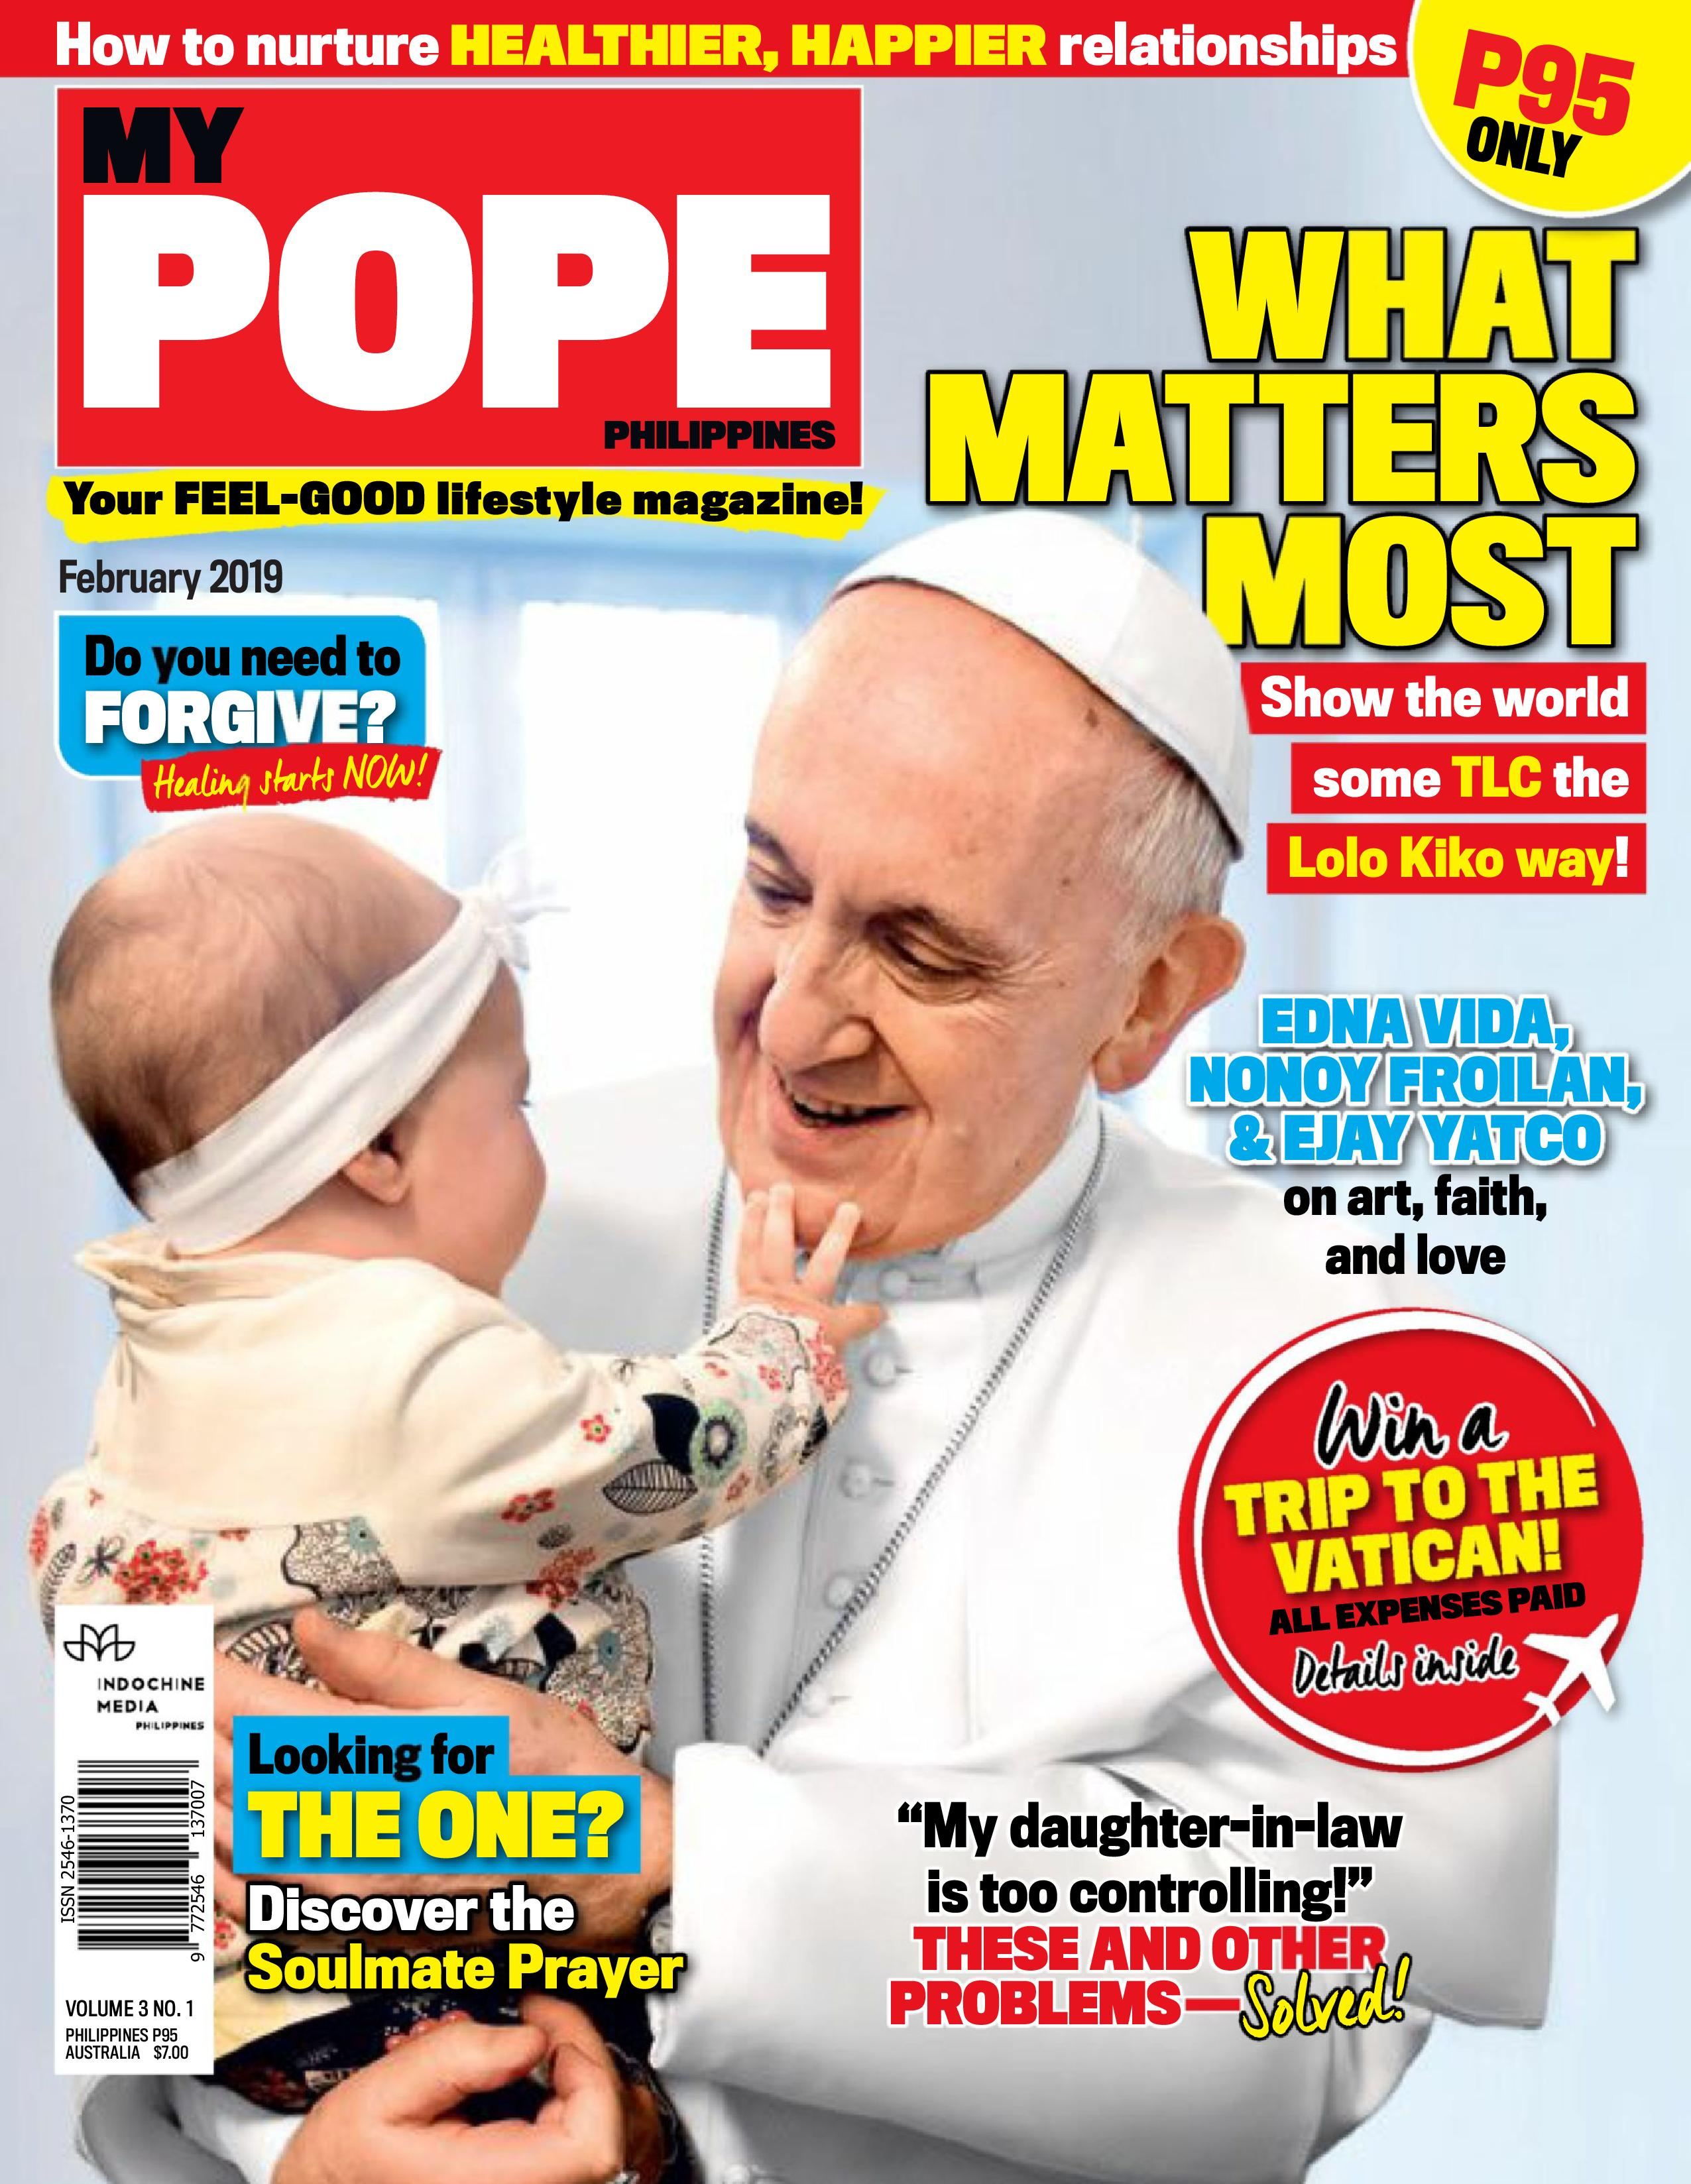 My Pope Philippines - February 2019